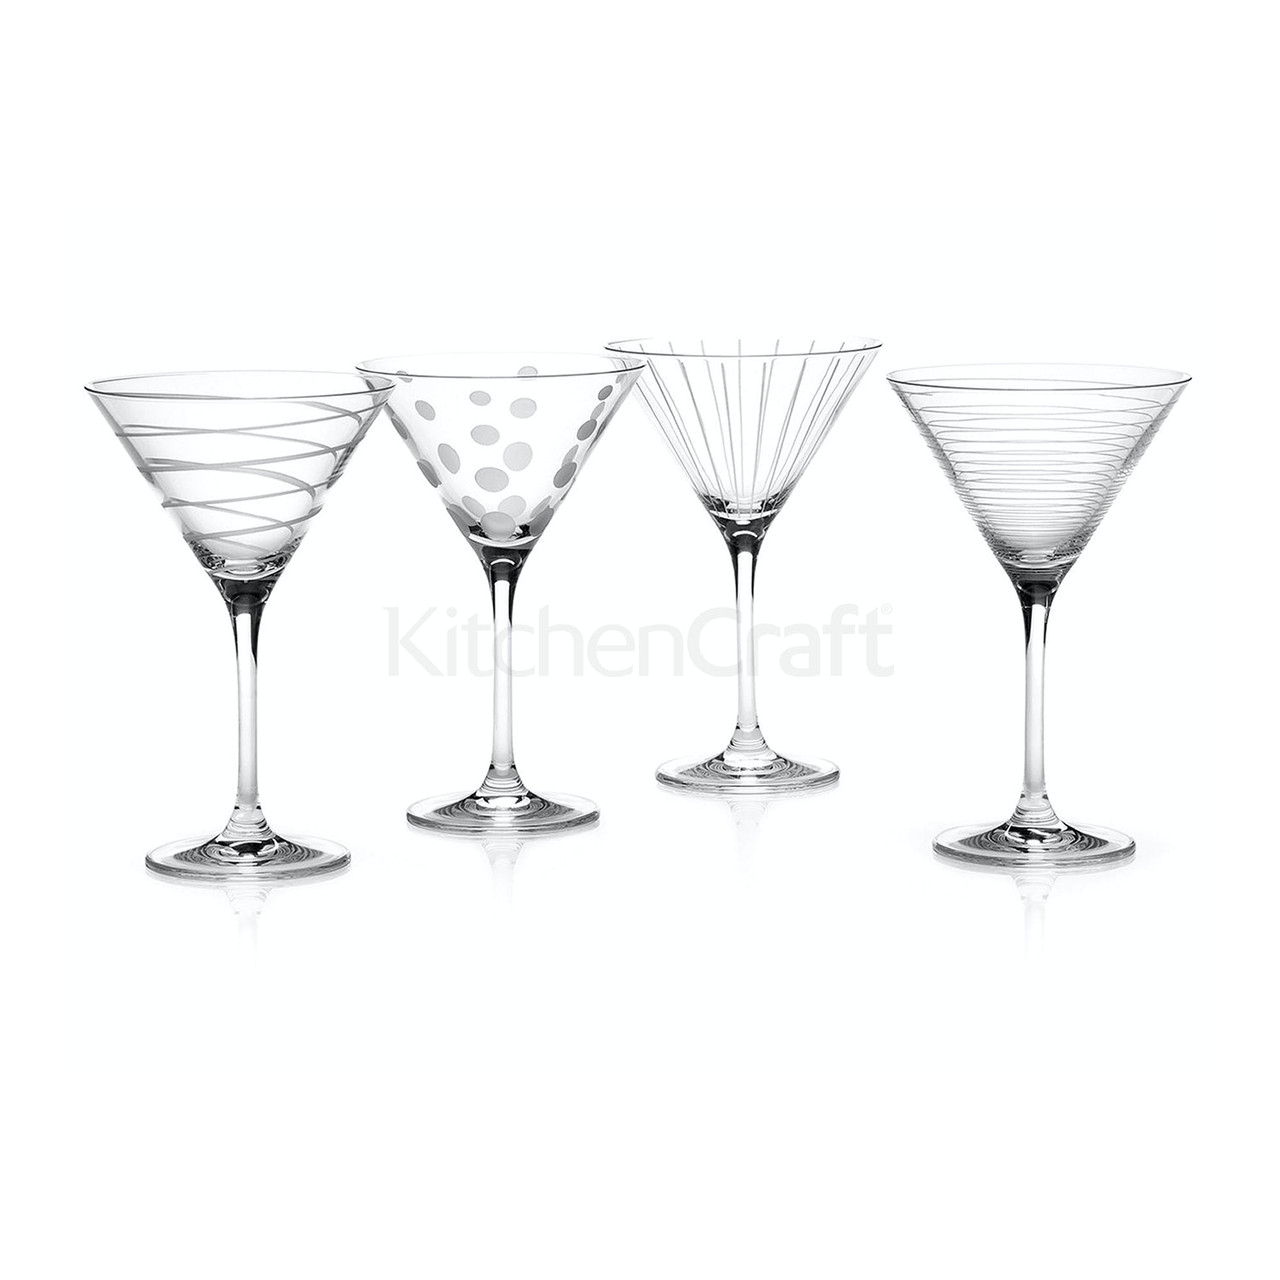 Mikasa Cheers Set Of 4 Martini Glasses (LOCAL DELIVERY ONLY)